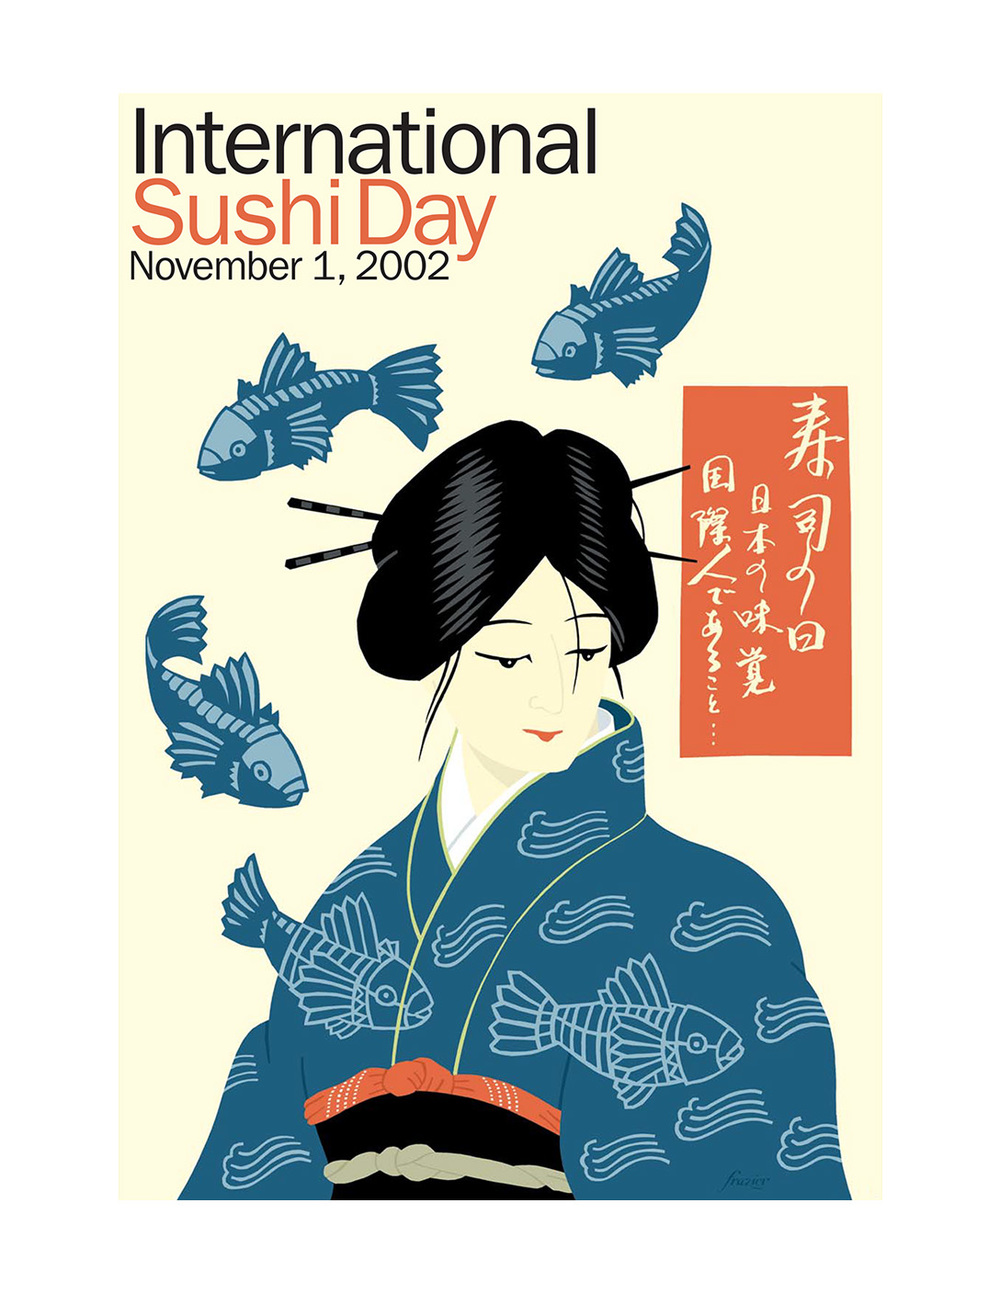 International Sushi Day poster